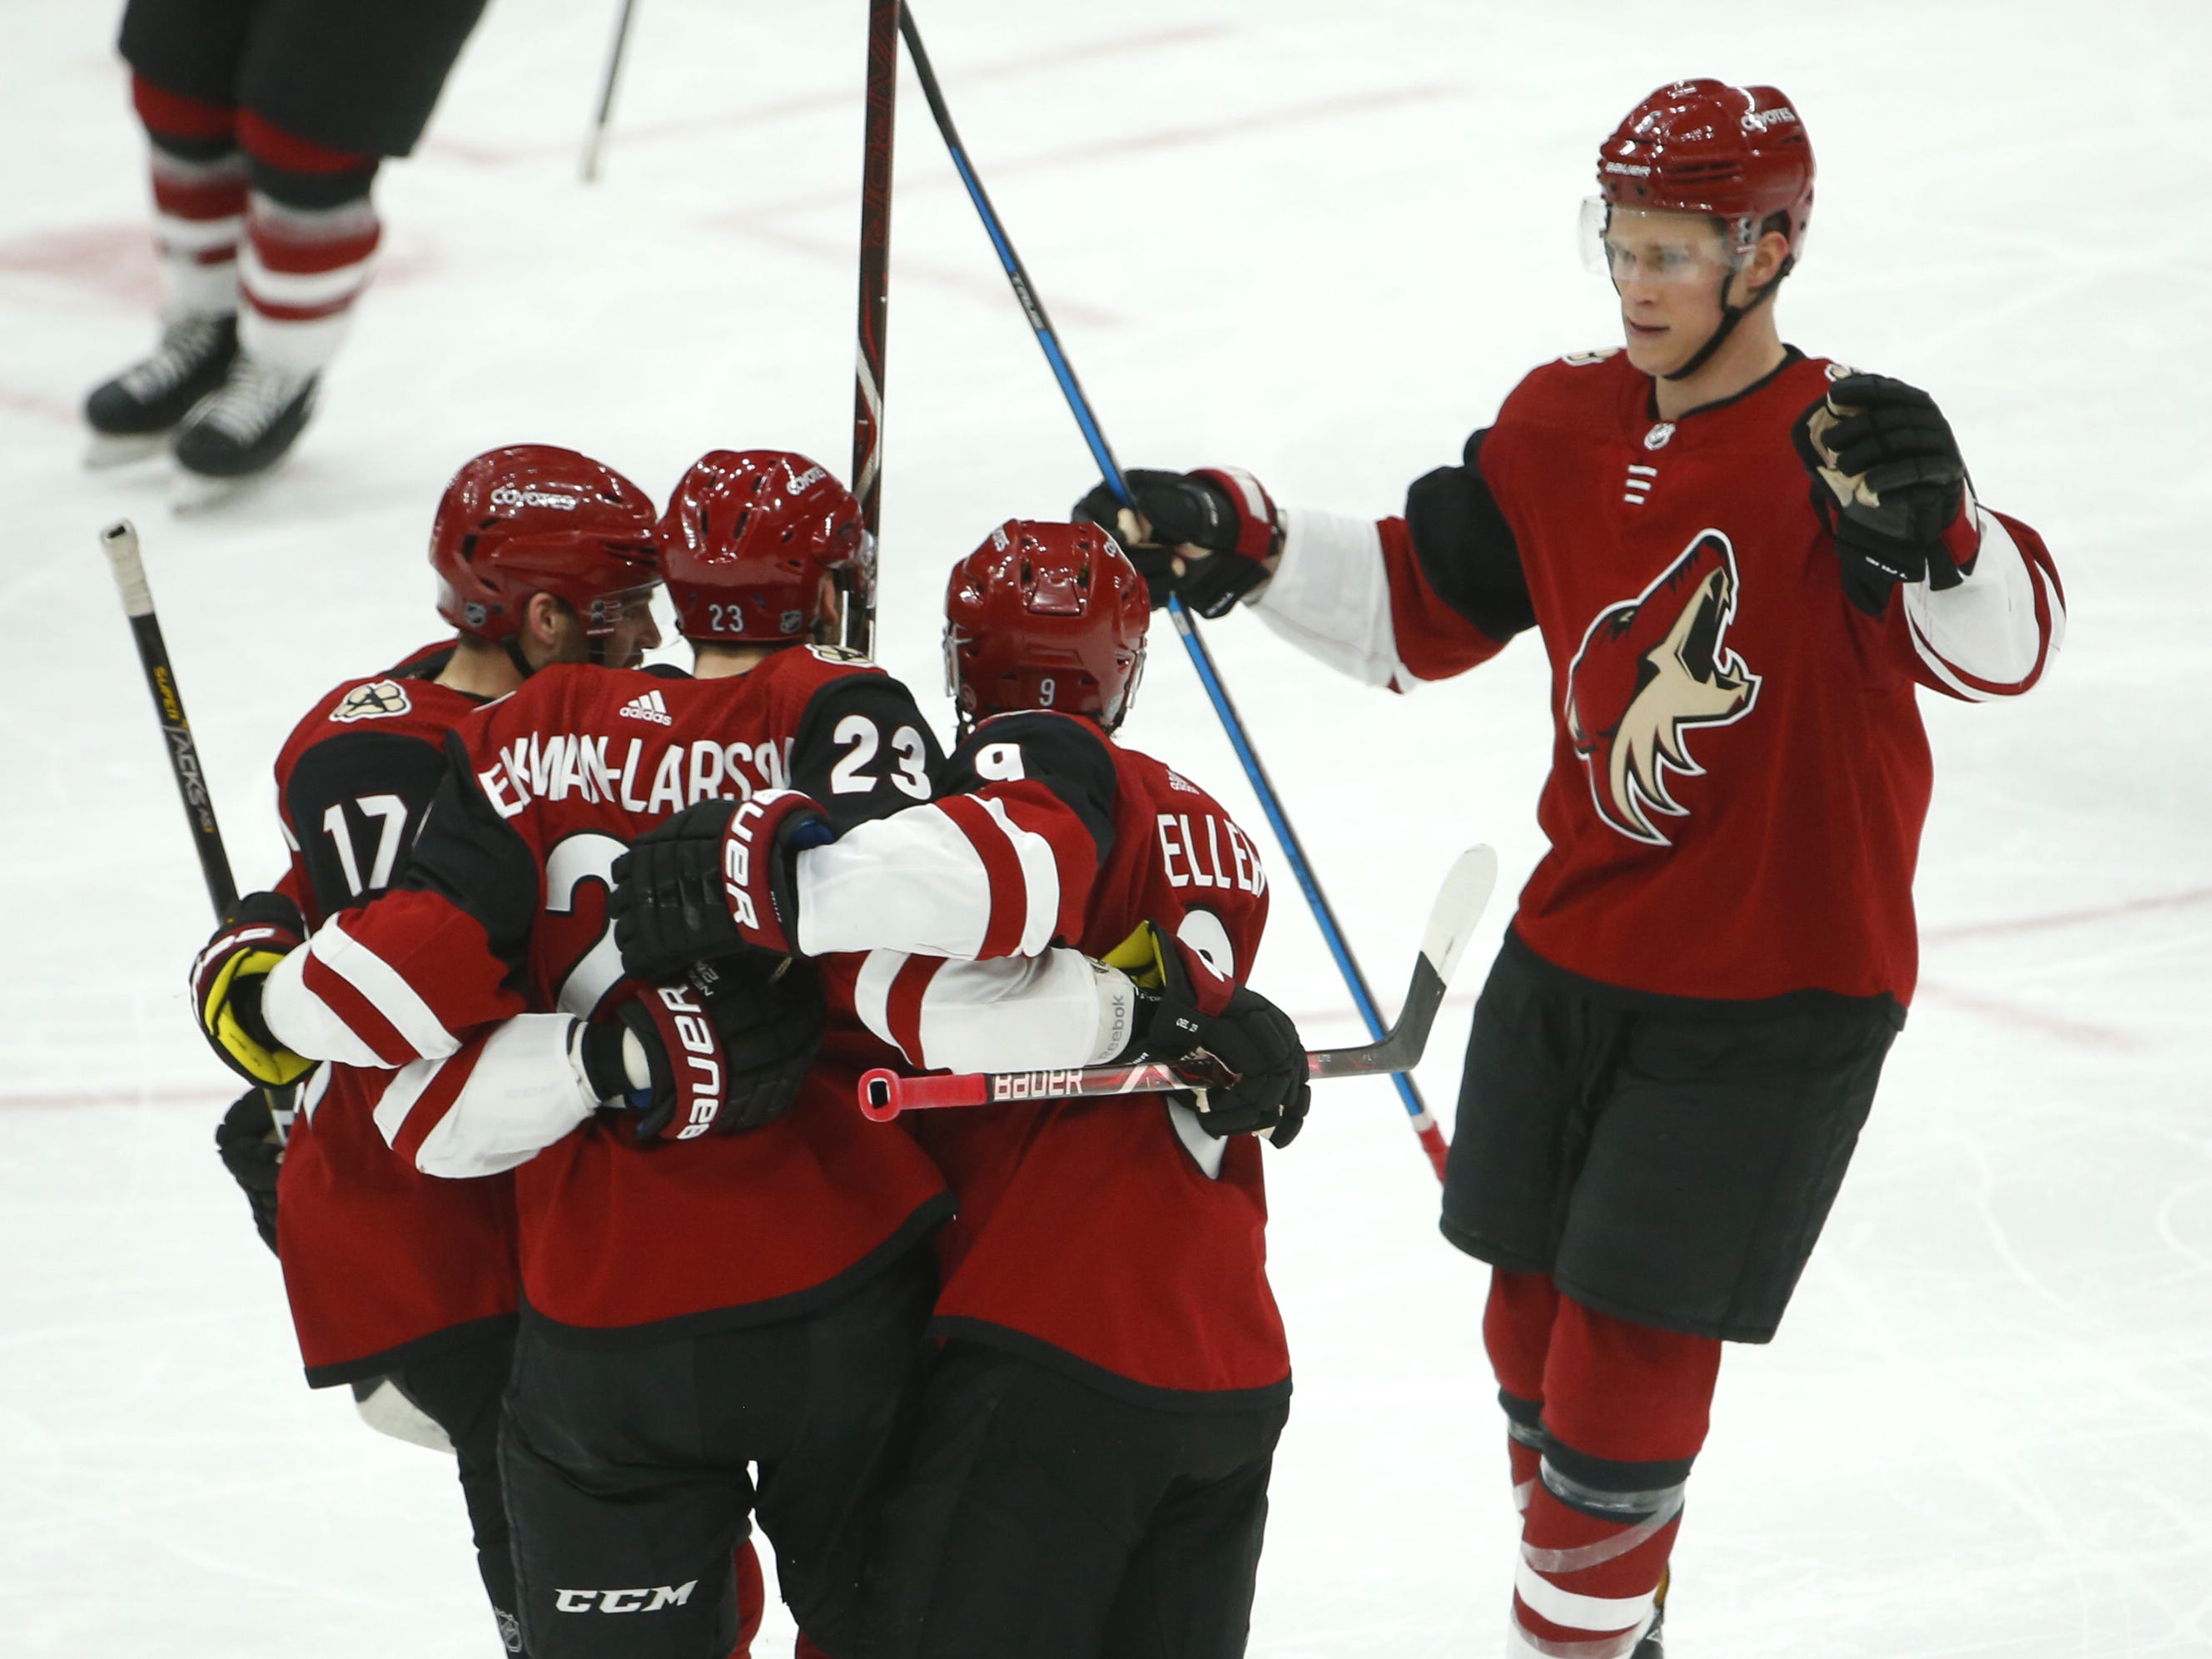 Coyotes' Oliver Ekman-Larsson (23) is greeted by teammates after scoring during the first period against the Rangers at Gila River Arena in Glendale, Ariz. on January 6, 2019.